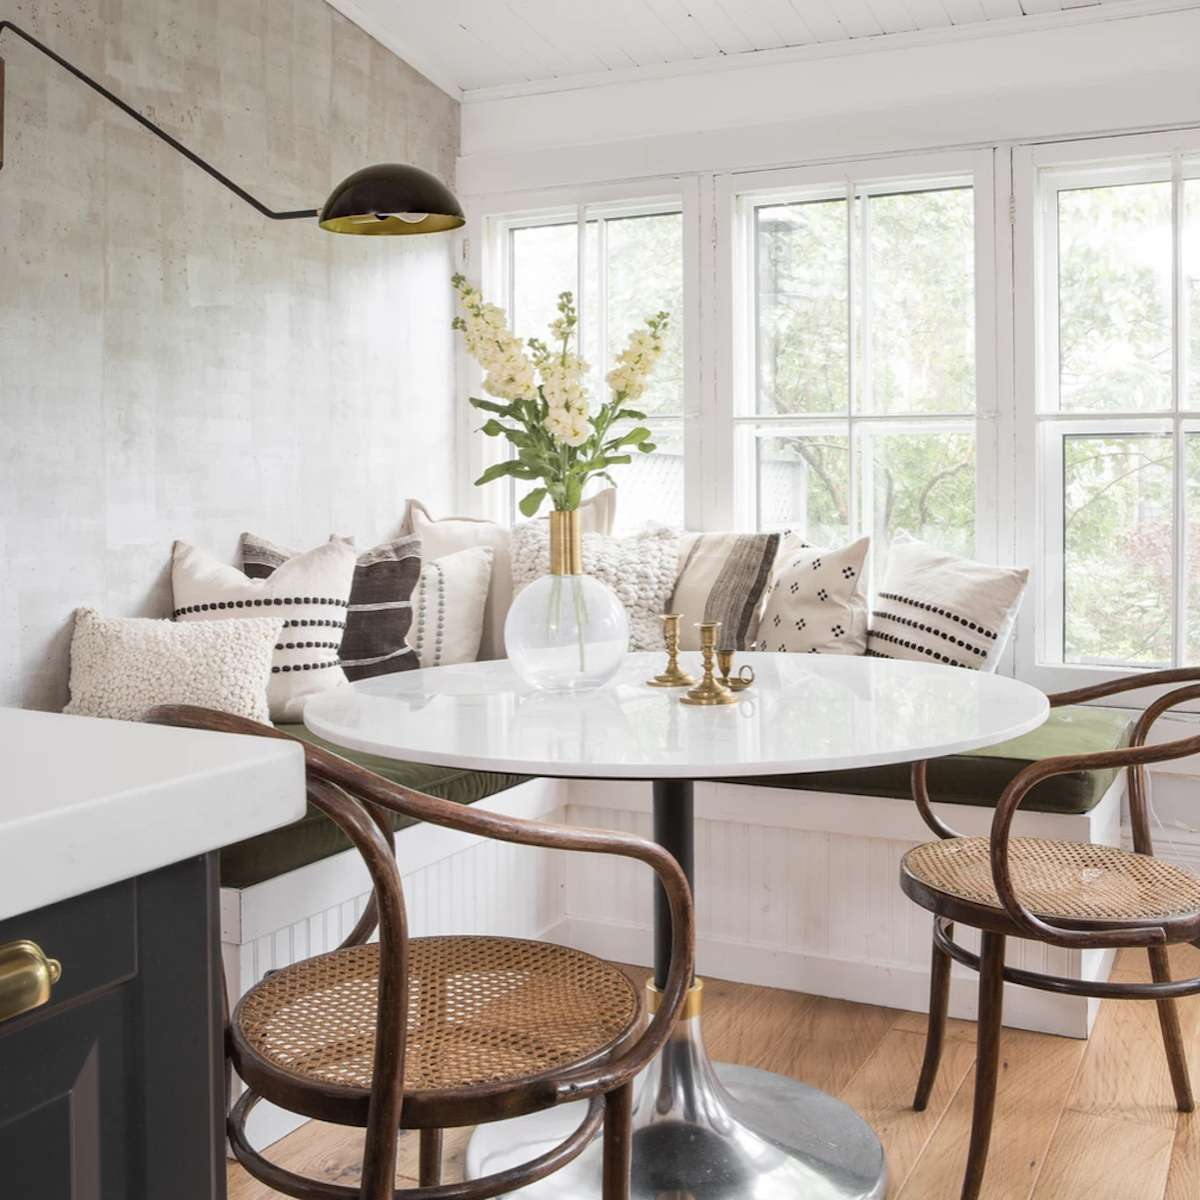 breakfast nook in kitchen with green cushions and white table